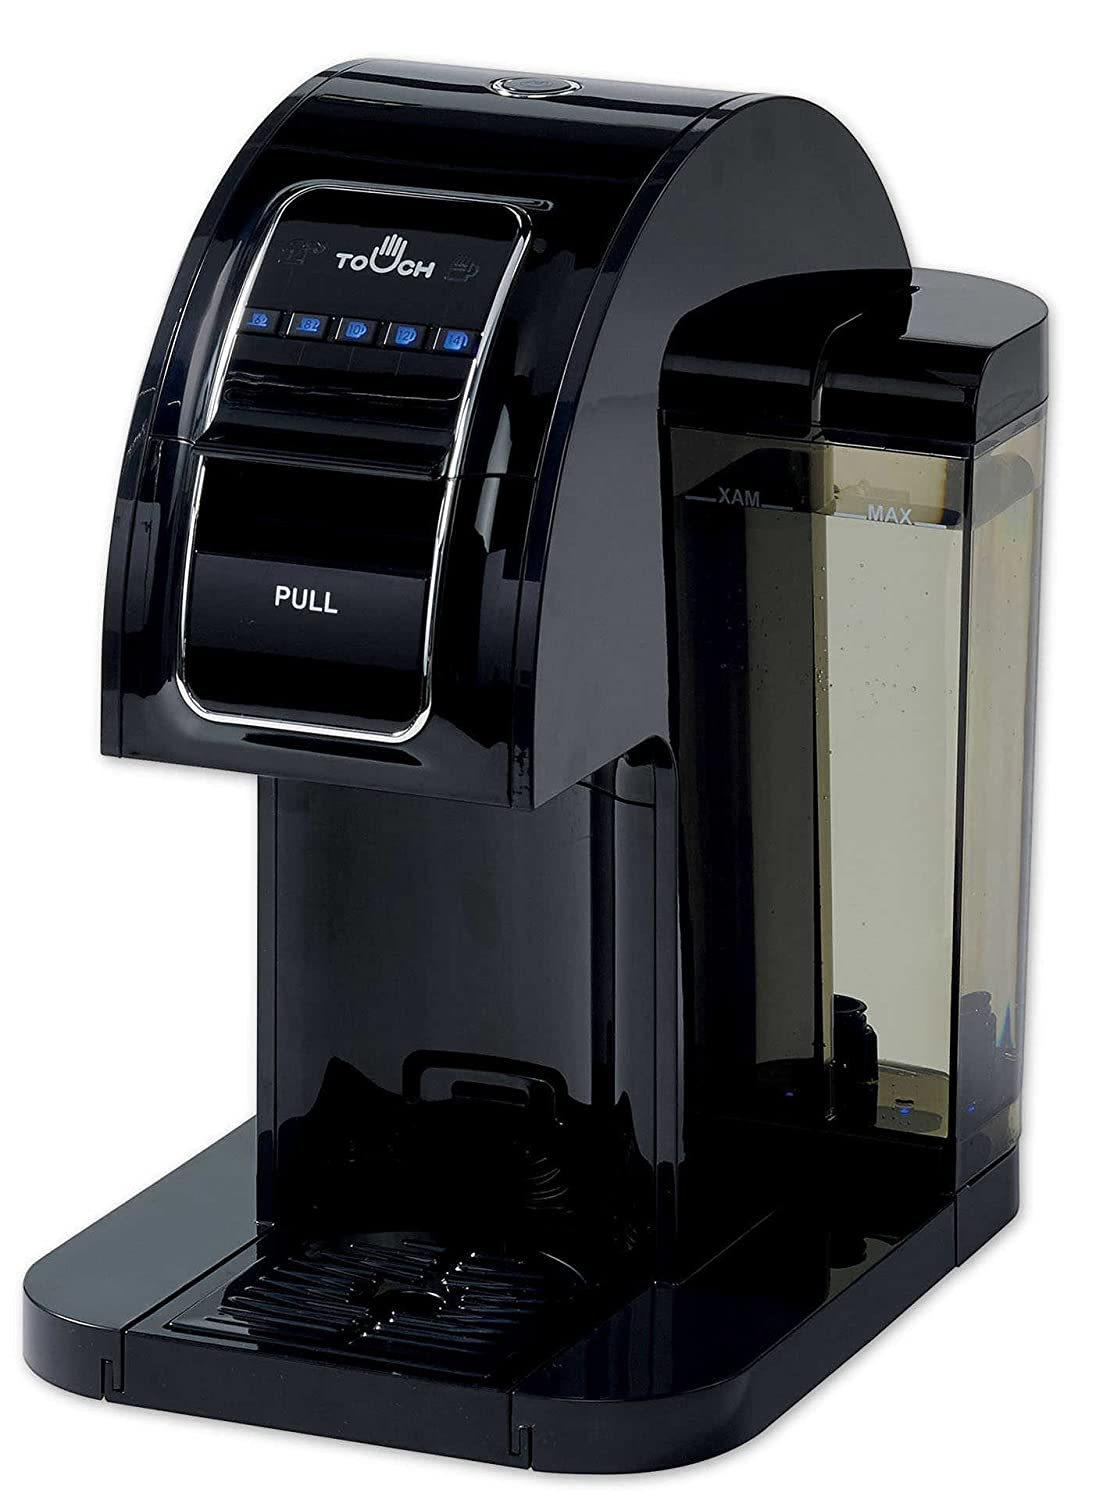 Touch Essential Single Serve Coffee Brewer - Black Coffee Maker with Full K-Cup Pod Compatibility & Rapid Brew Technology - T214B